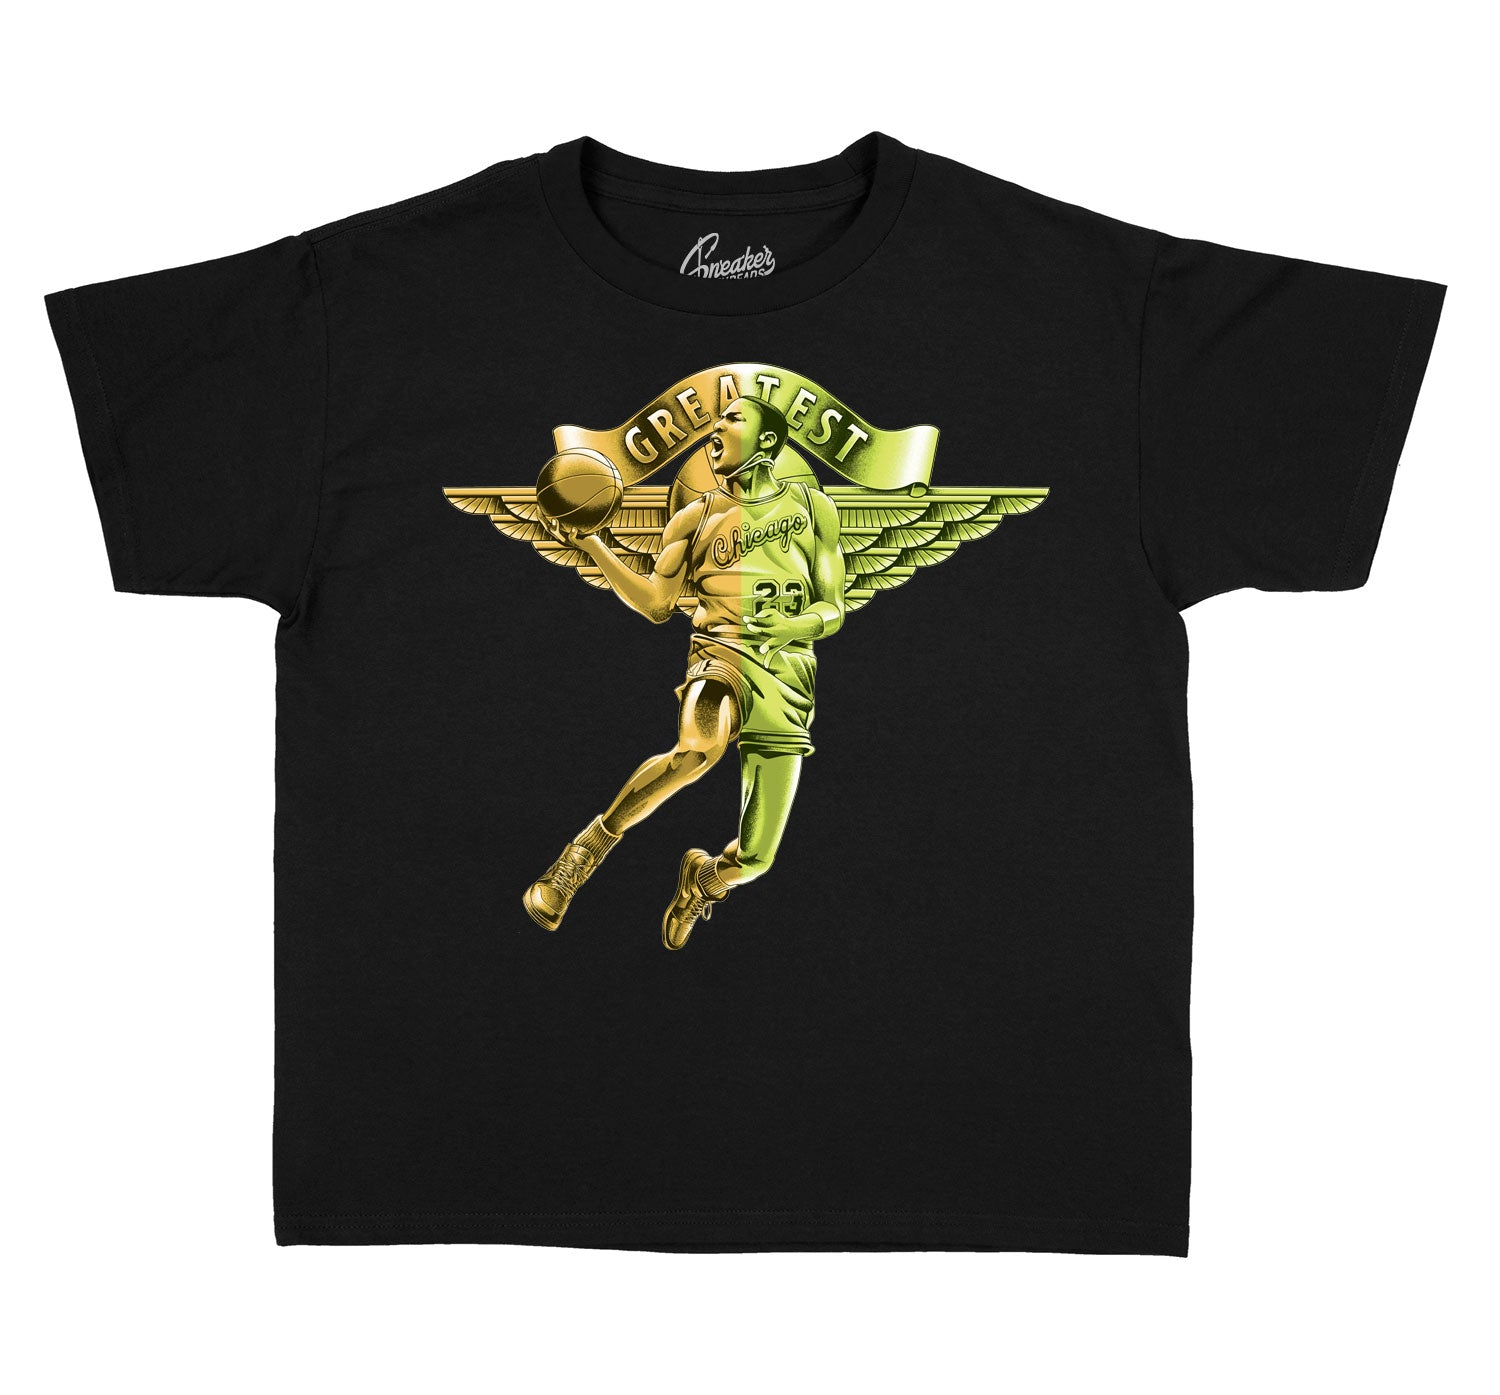 Jordan 1 Volt Gold sneaker collection matching with kids  tees